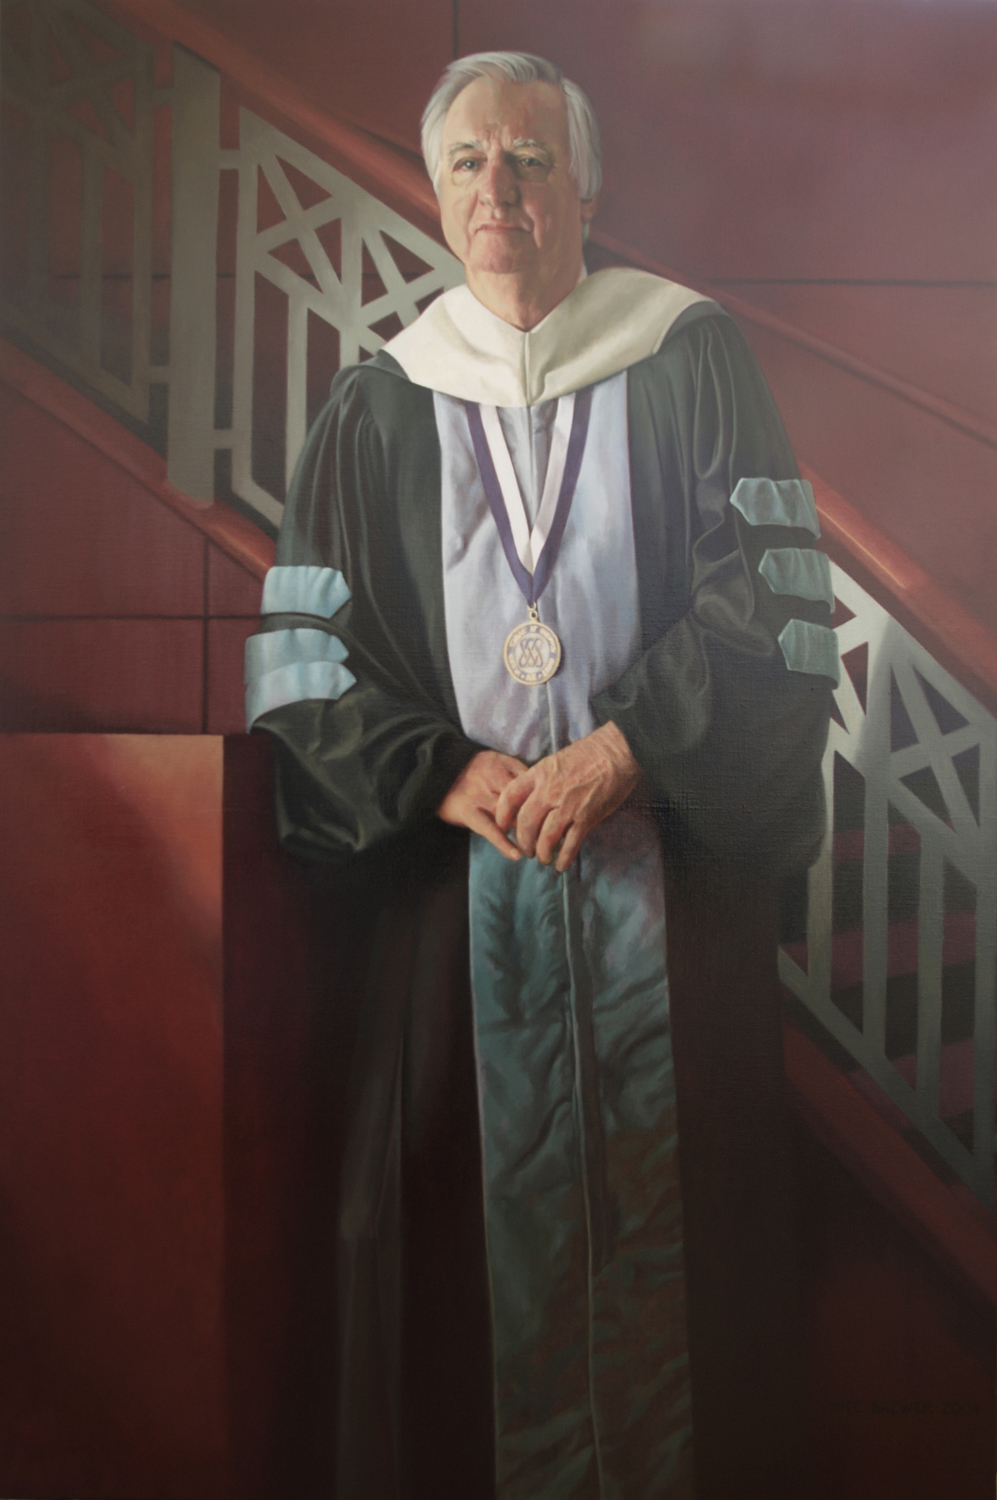 Dr. Edward E. Brickell, Past president of Eastern Virginia Medical School